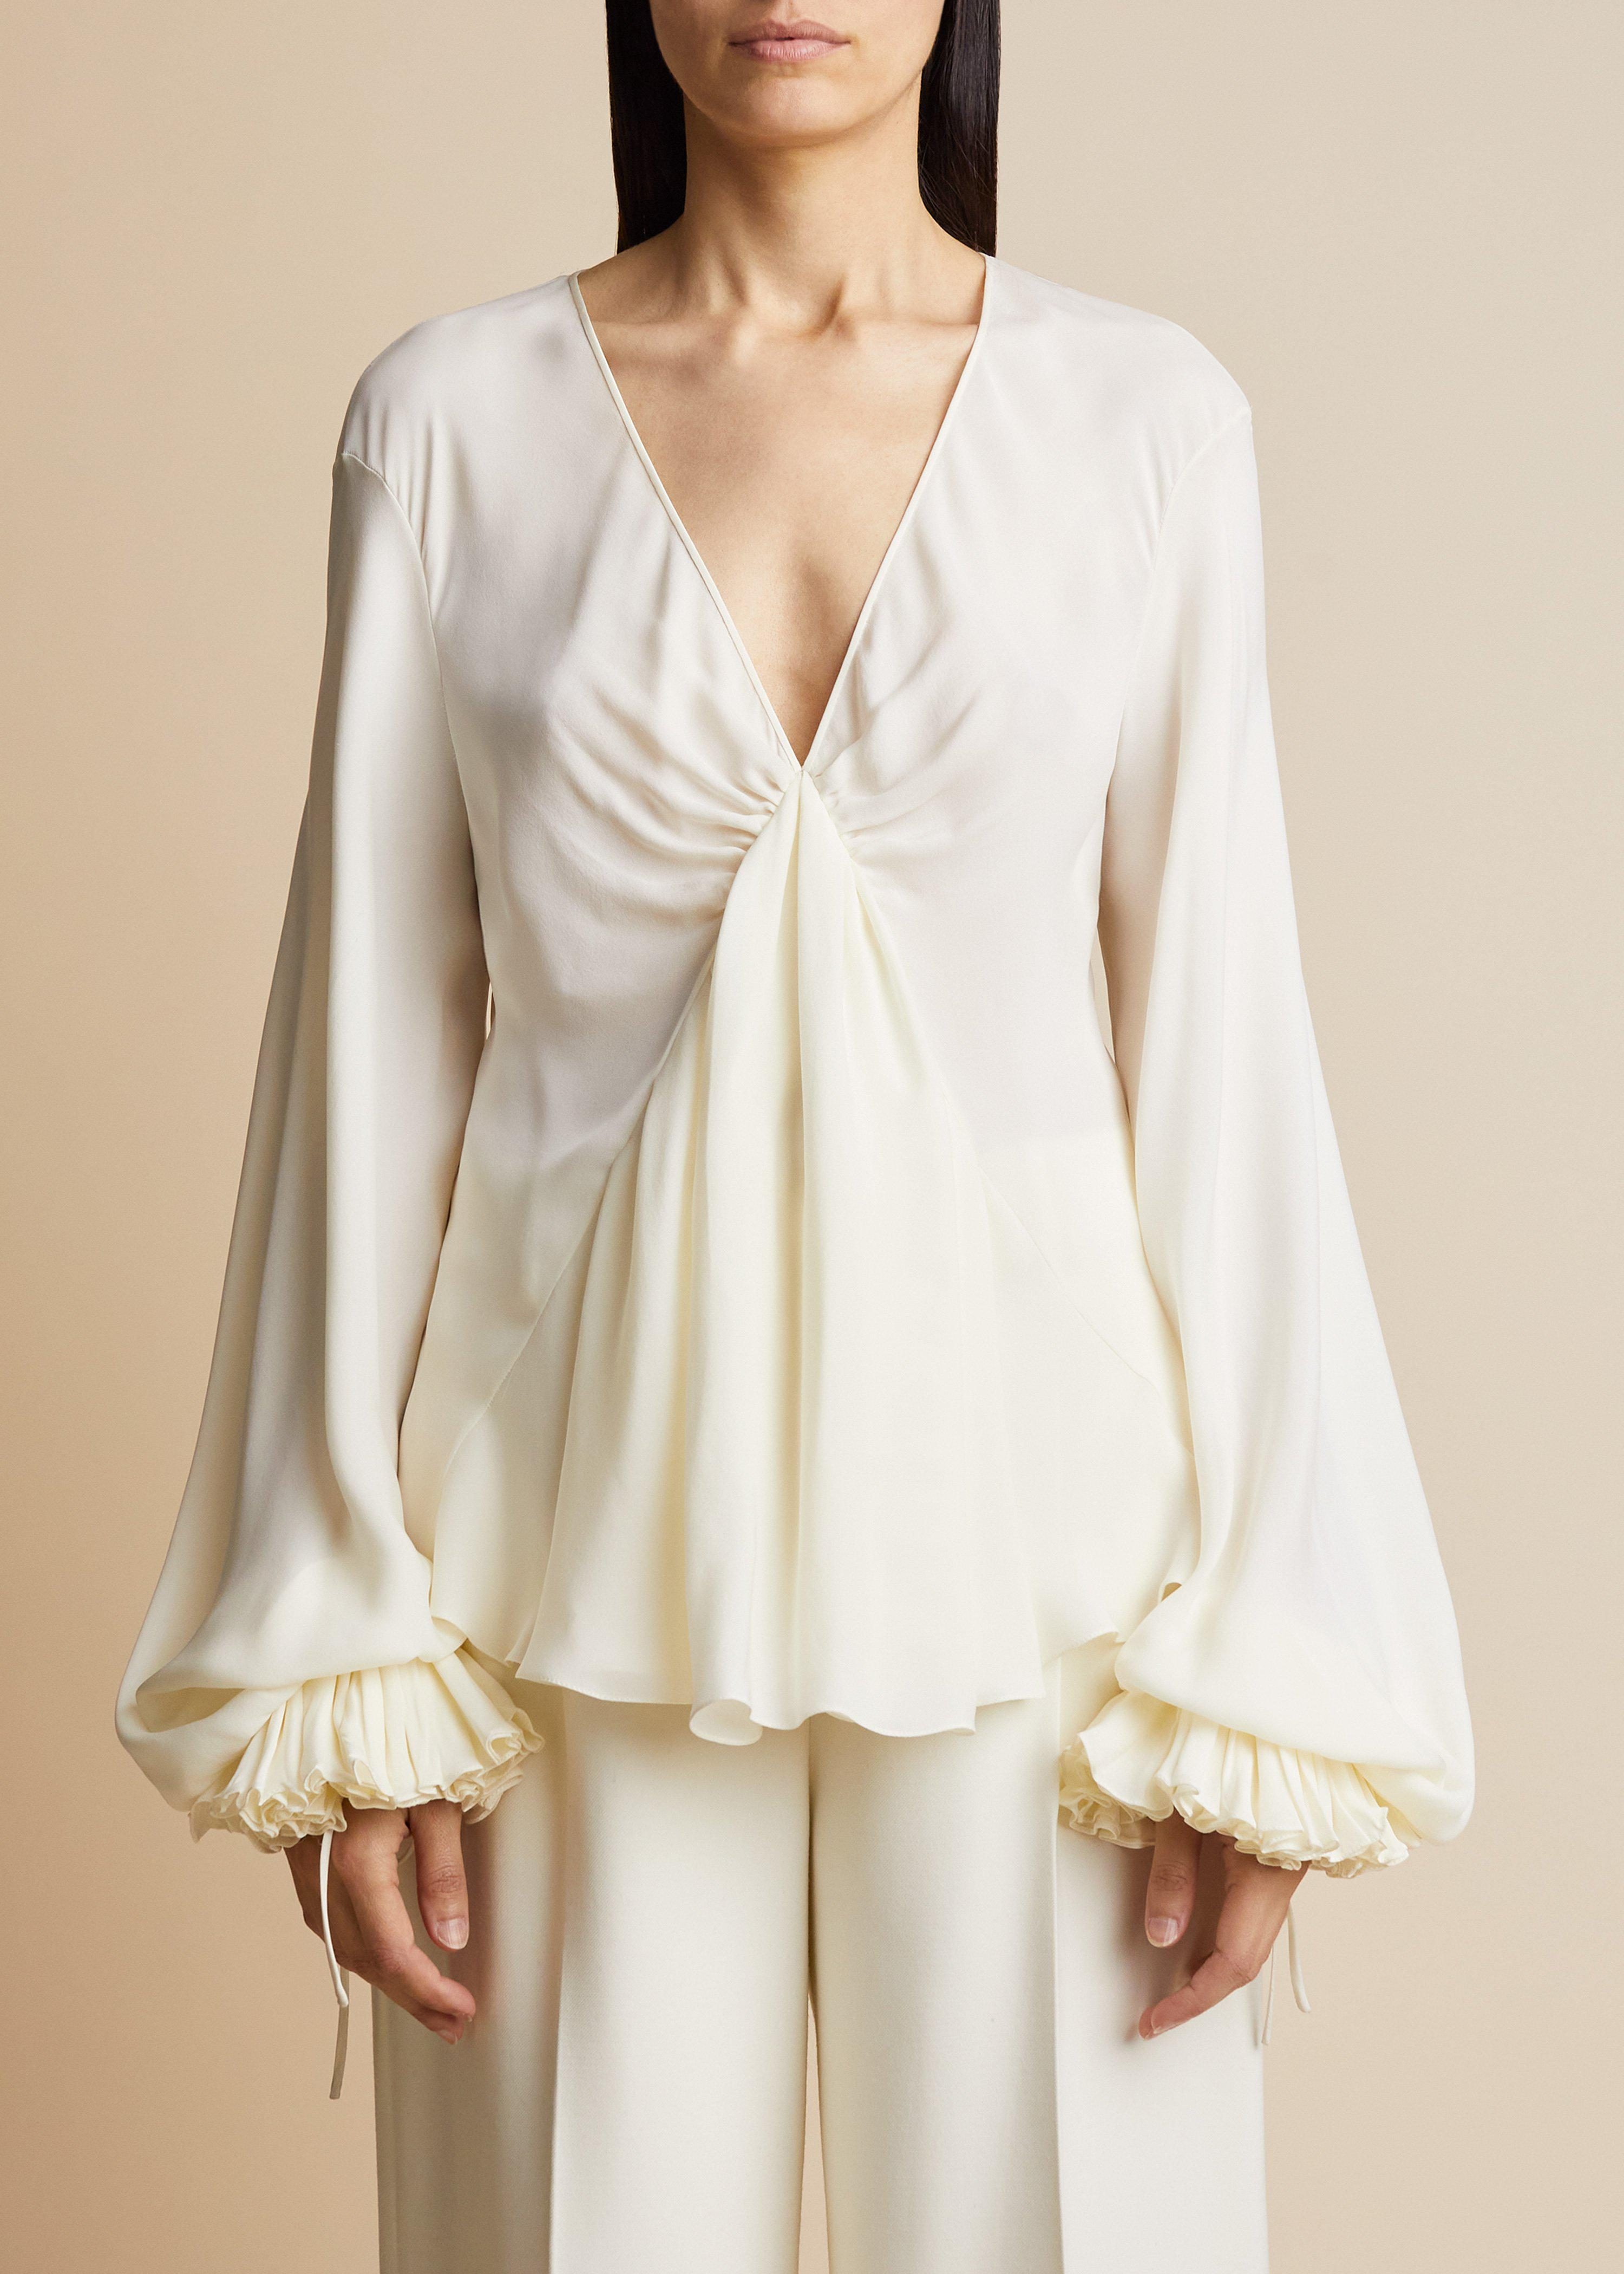 The Mari Top in Ivory